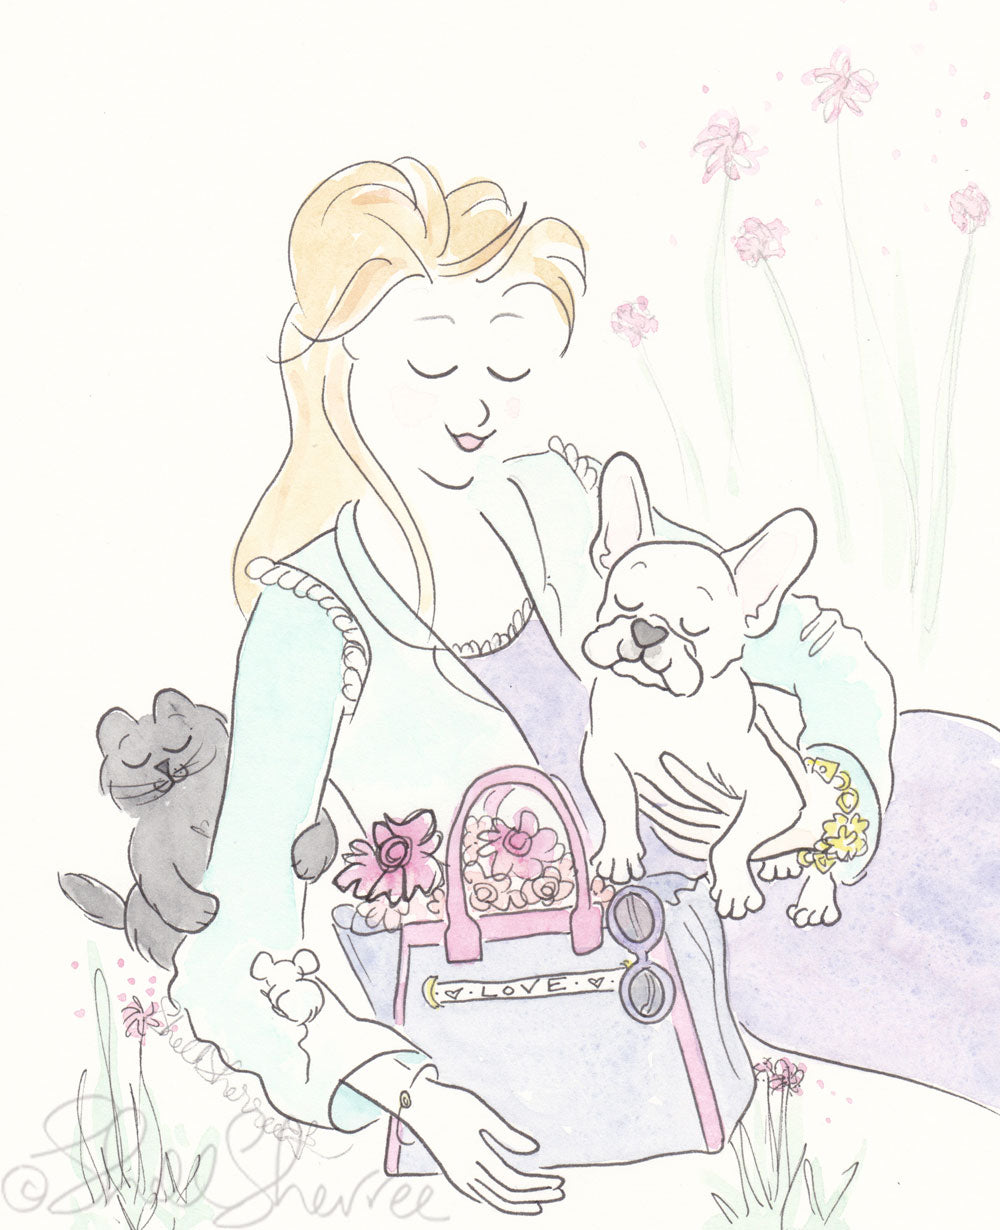 white french bulldog puppy cuddles in the park with black cat, shell sherree illustration